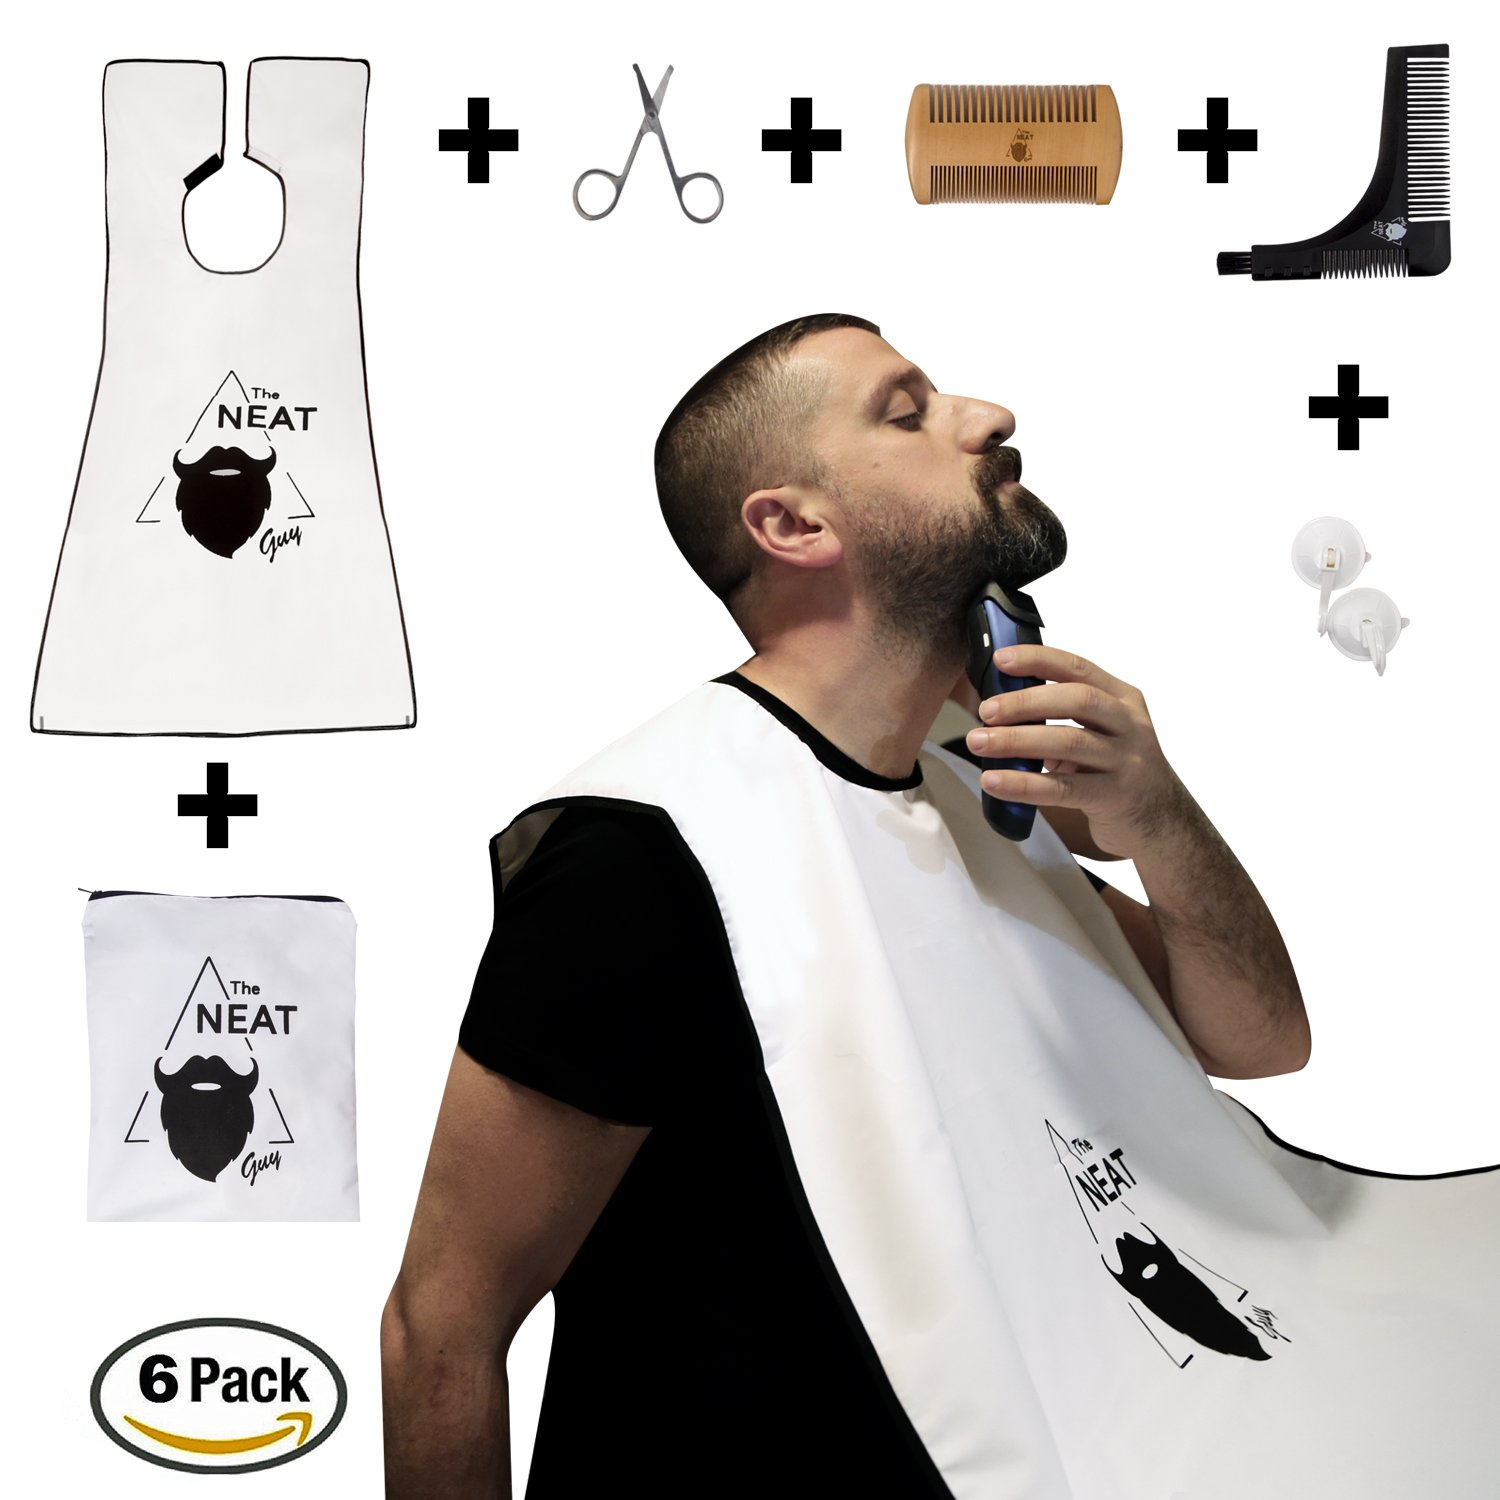 The Neat Guy 6-PACK Beard Kit with Beard Apron/Bib for Mess-Free Shaving + Shaping Tool + Comb + Scissor + Bag, All you Need for a Good, Clean Shave, The Perfect Gift